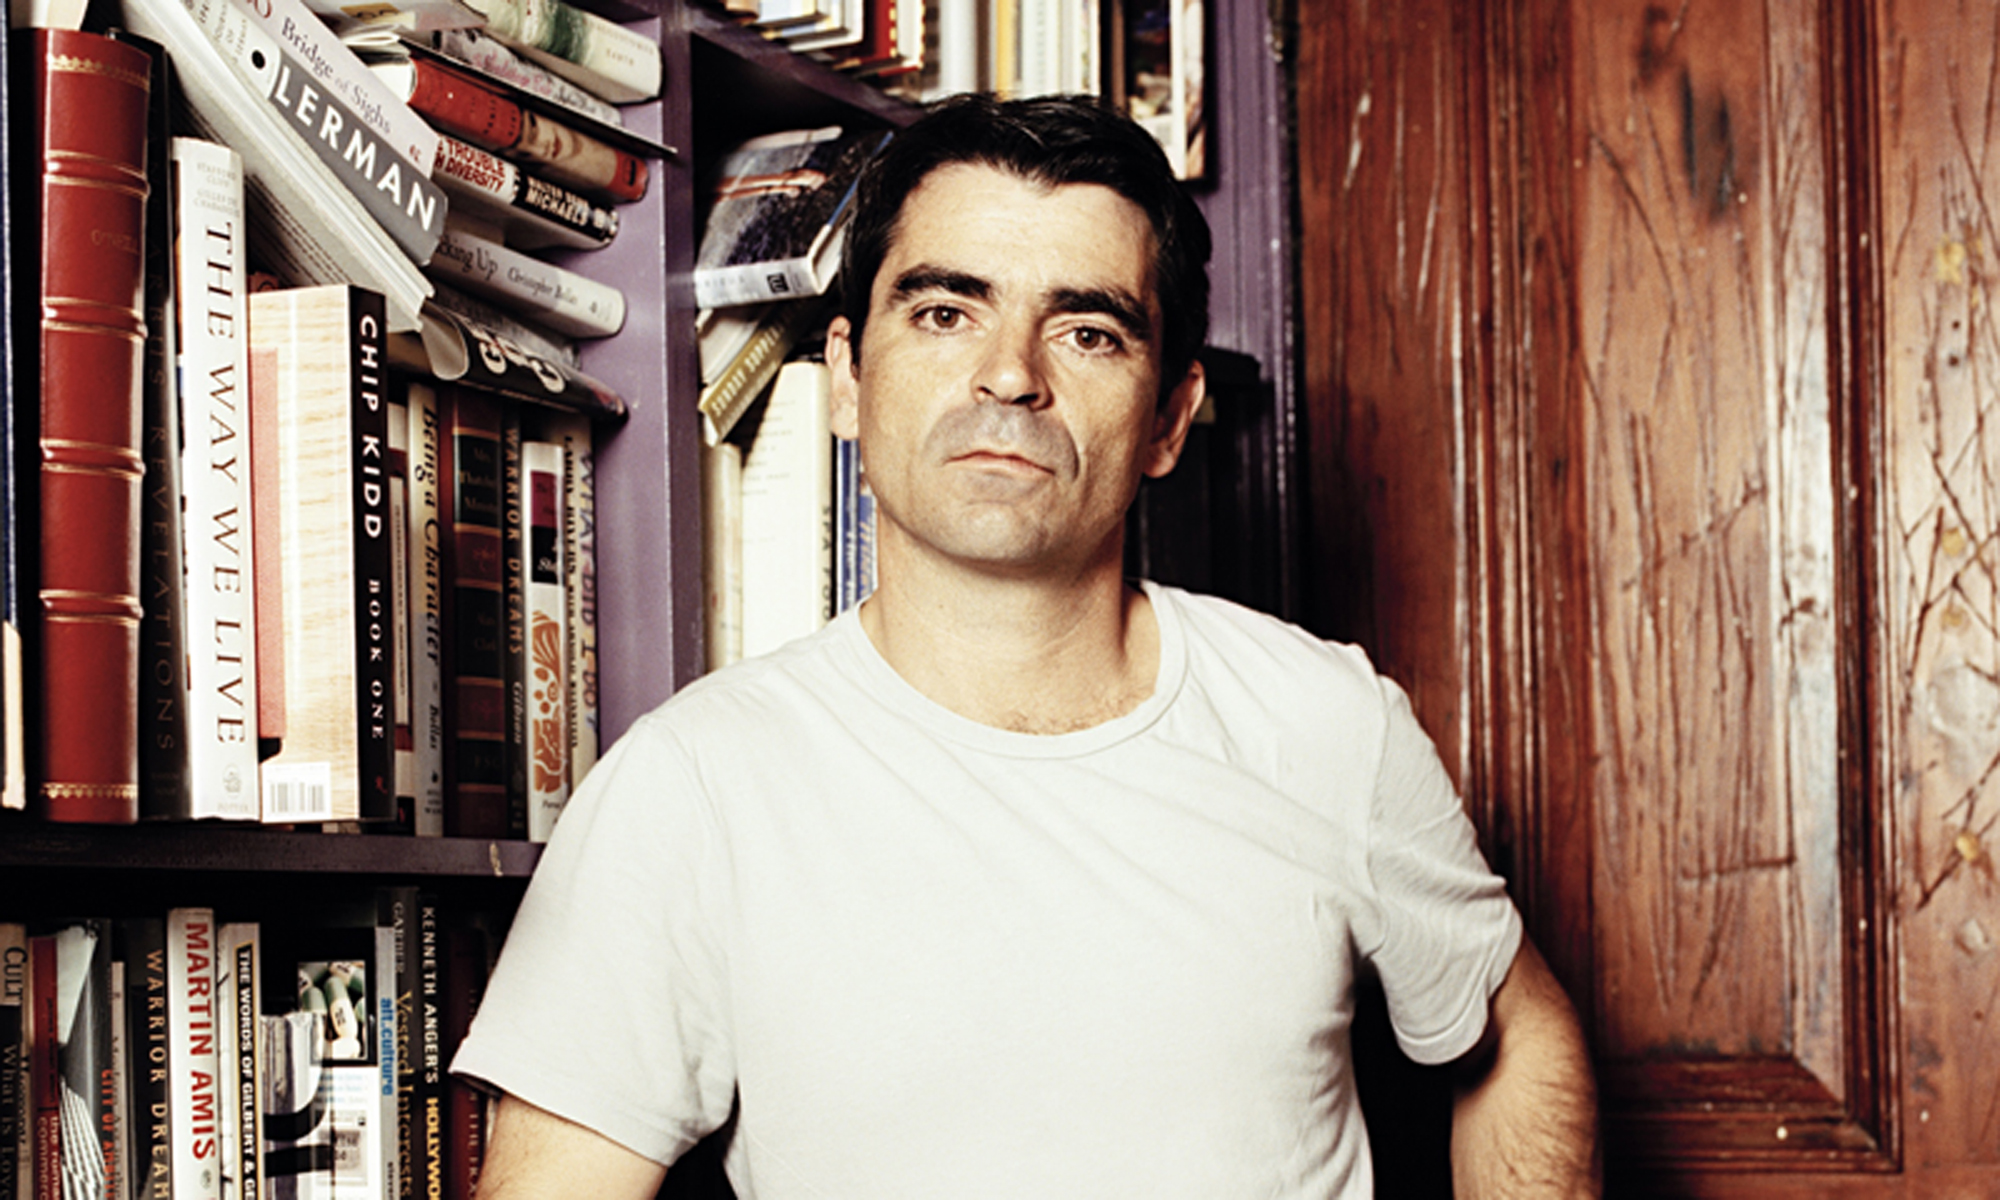 Listen to Joseph O'Neill read at Bard, 09.15.14.